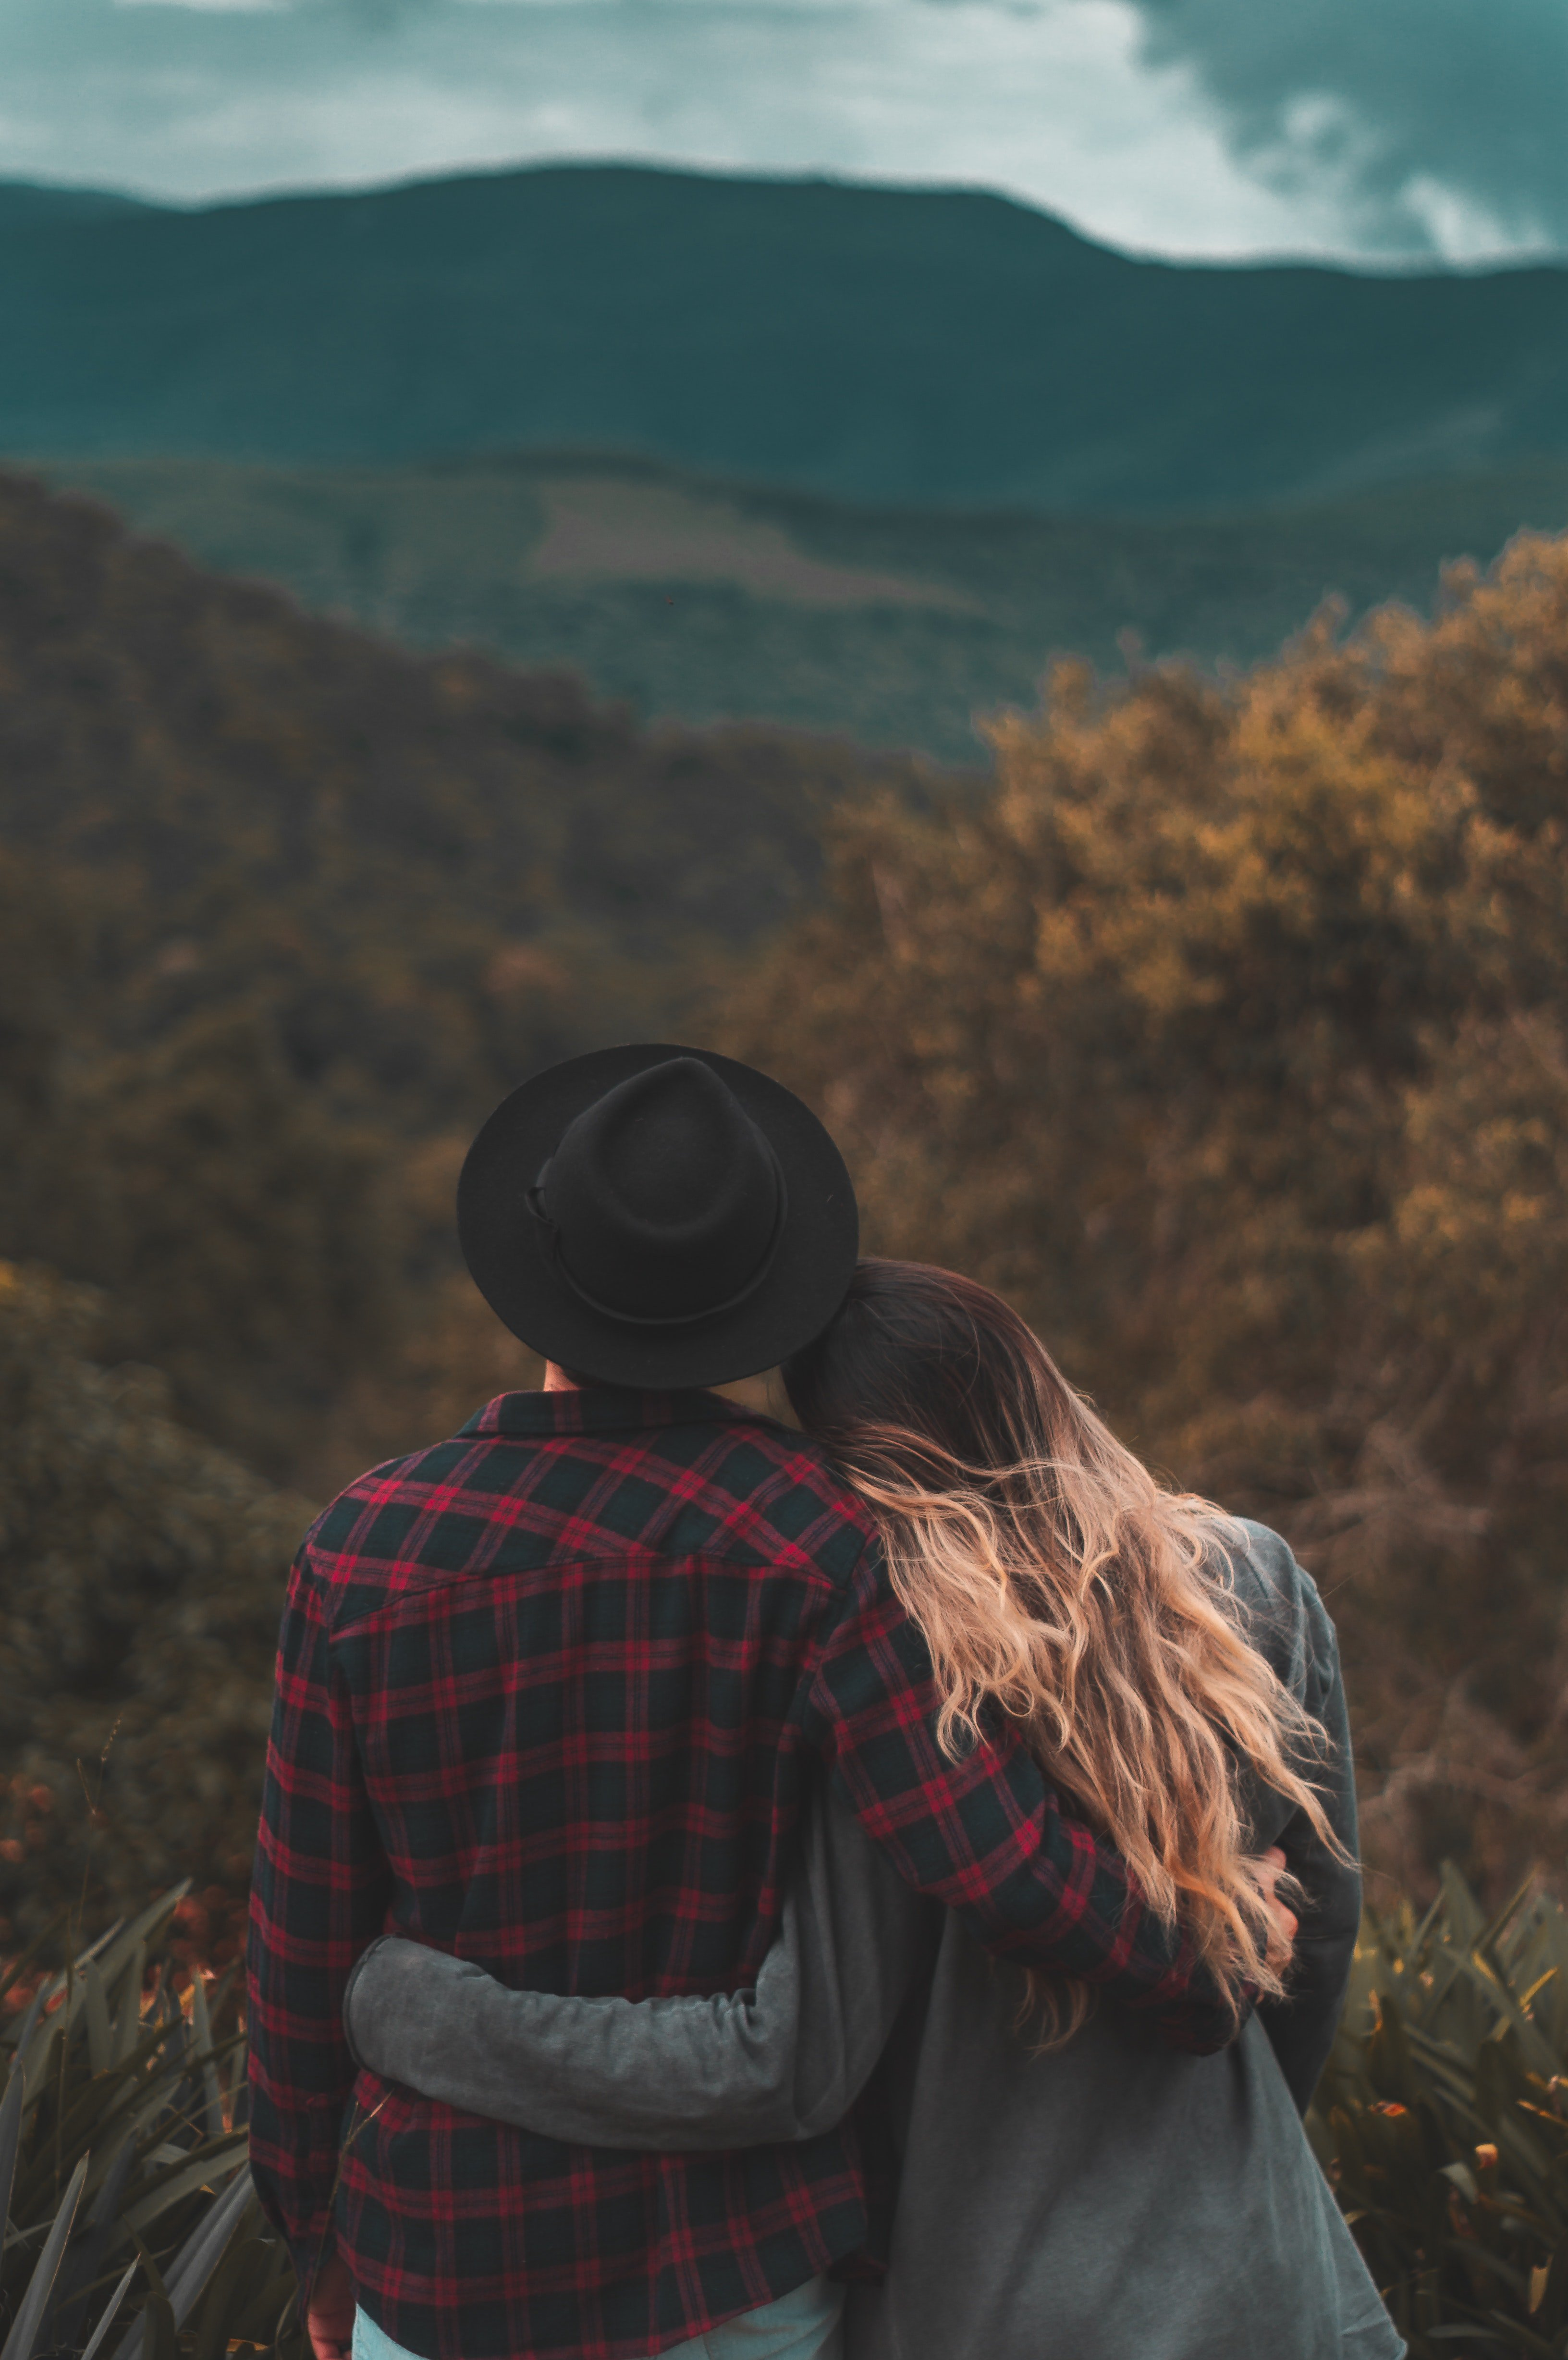 A couple standing on top of a hill with the woman resting her head on her man's shoulder   Source: Pexels